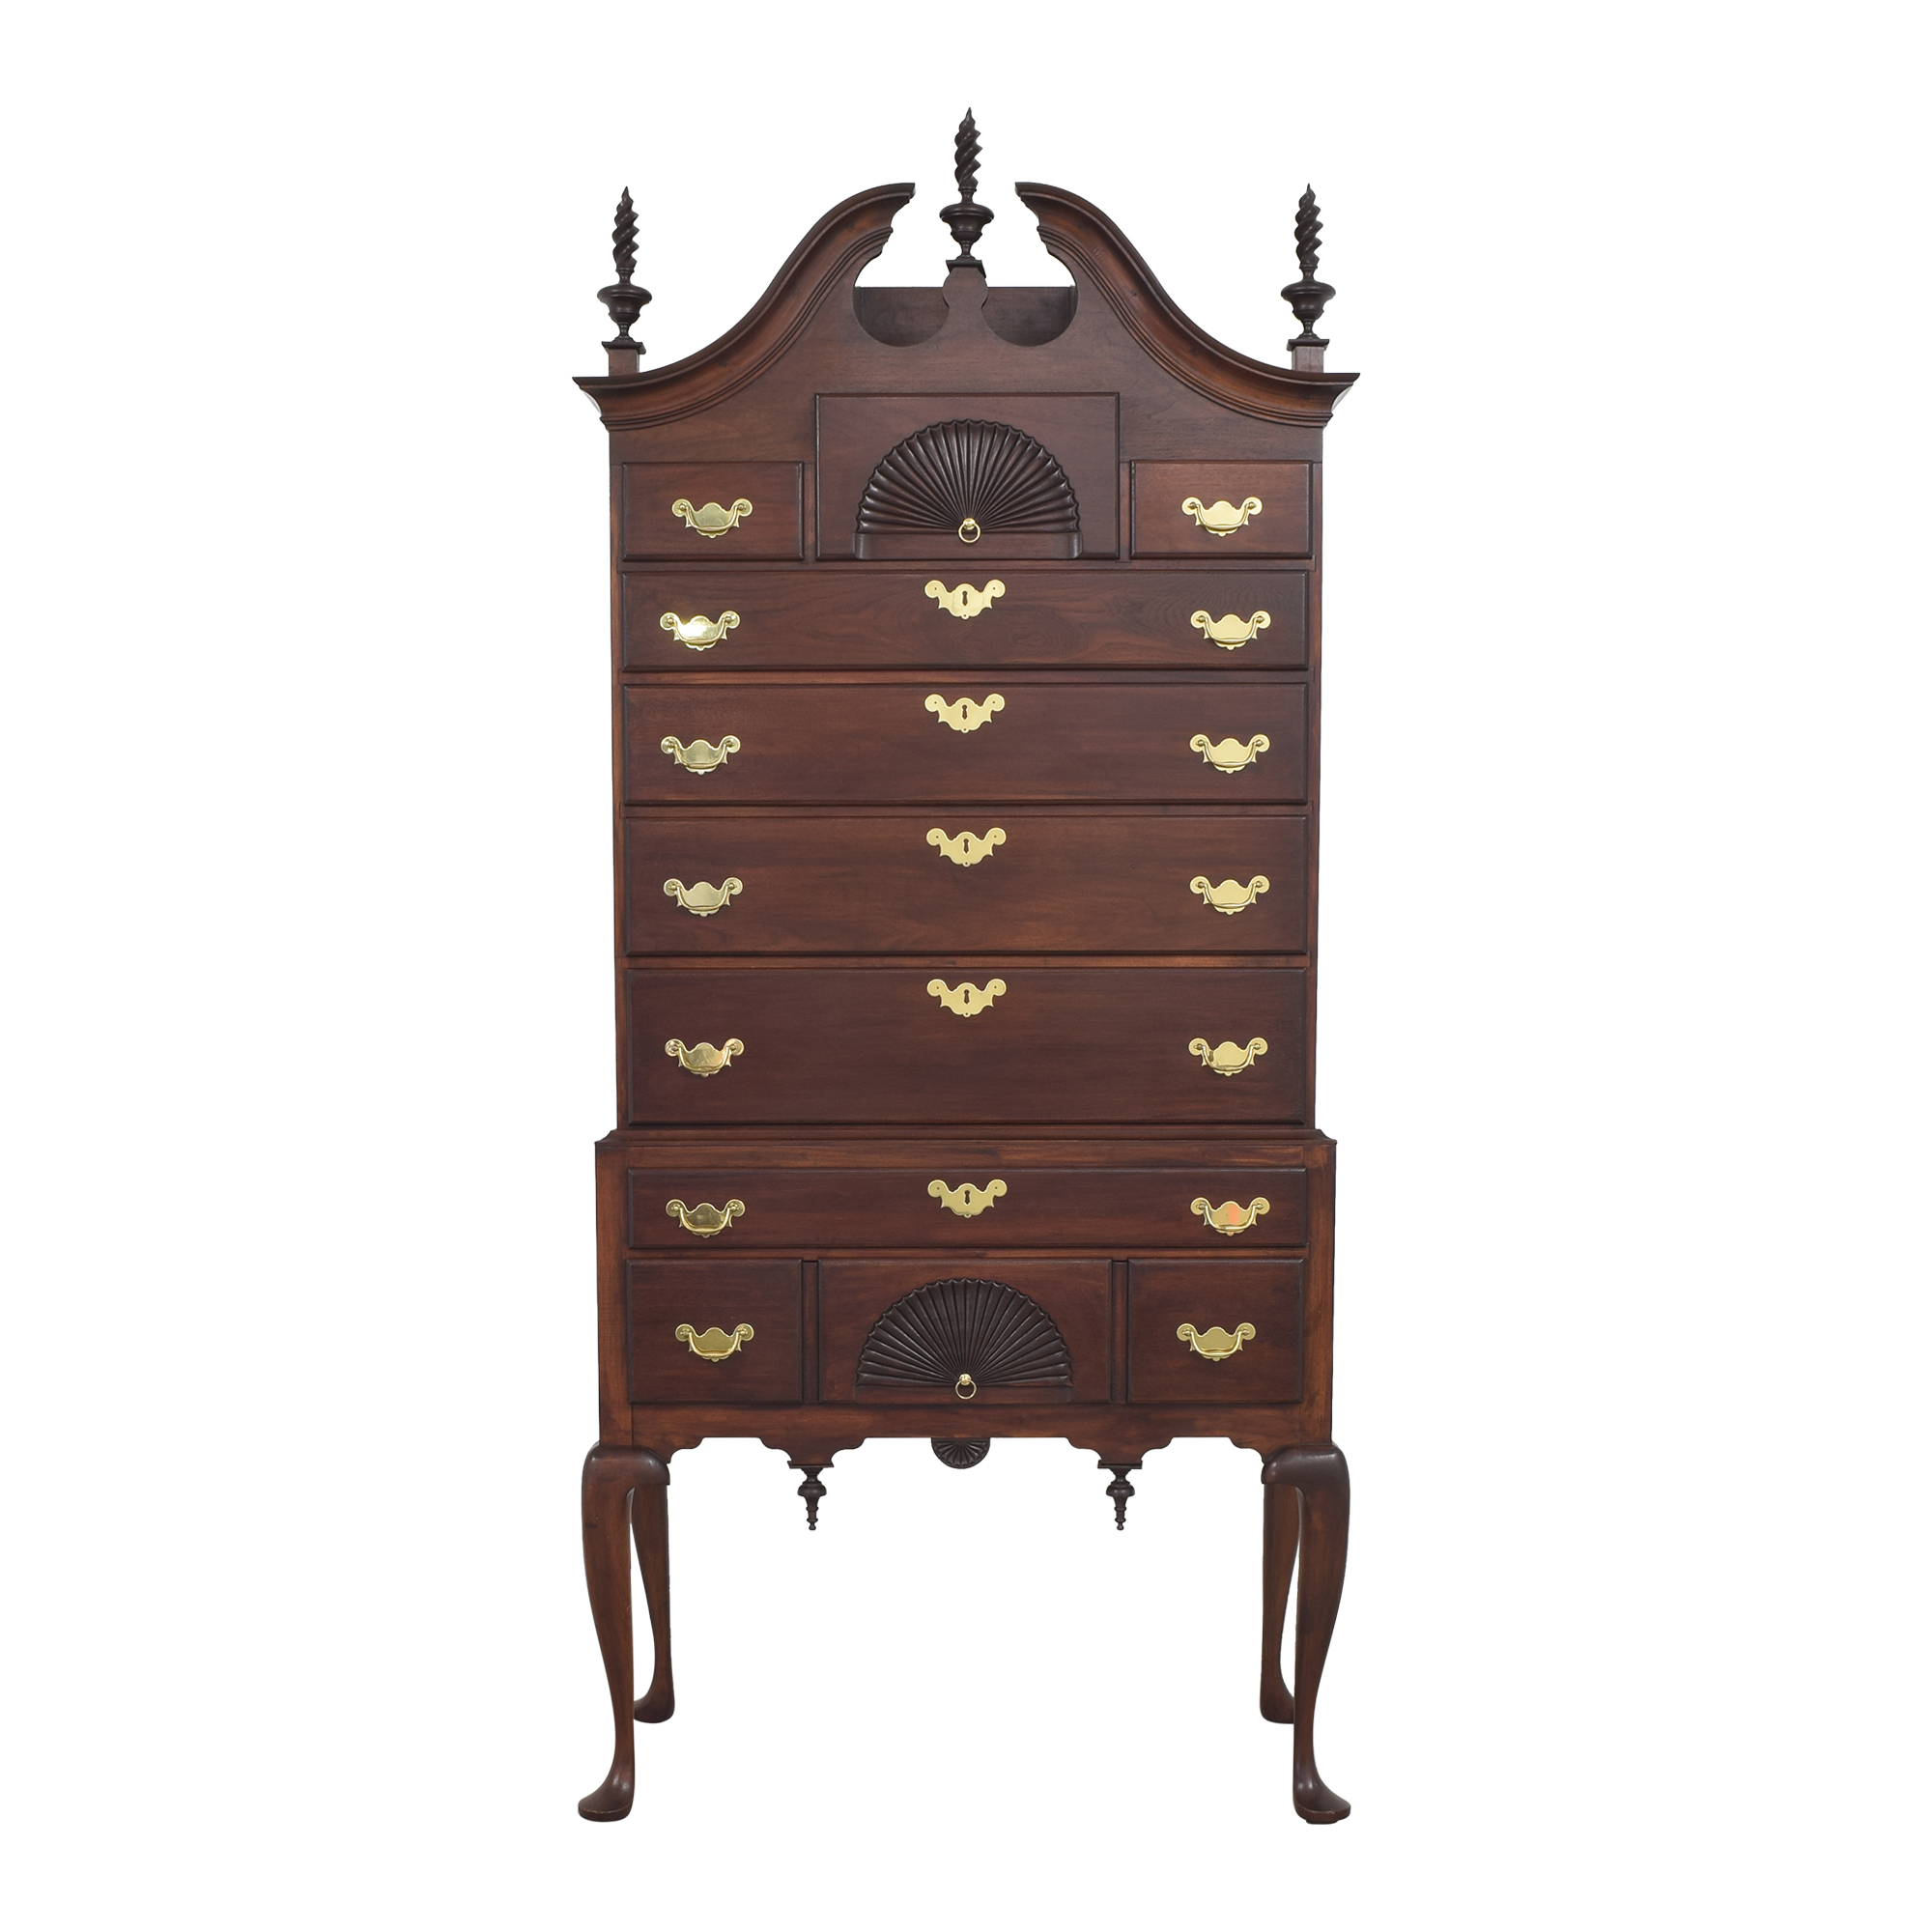 Bartley Classic Reproductions Queen Anne Bonnet Top Highboy / Storage